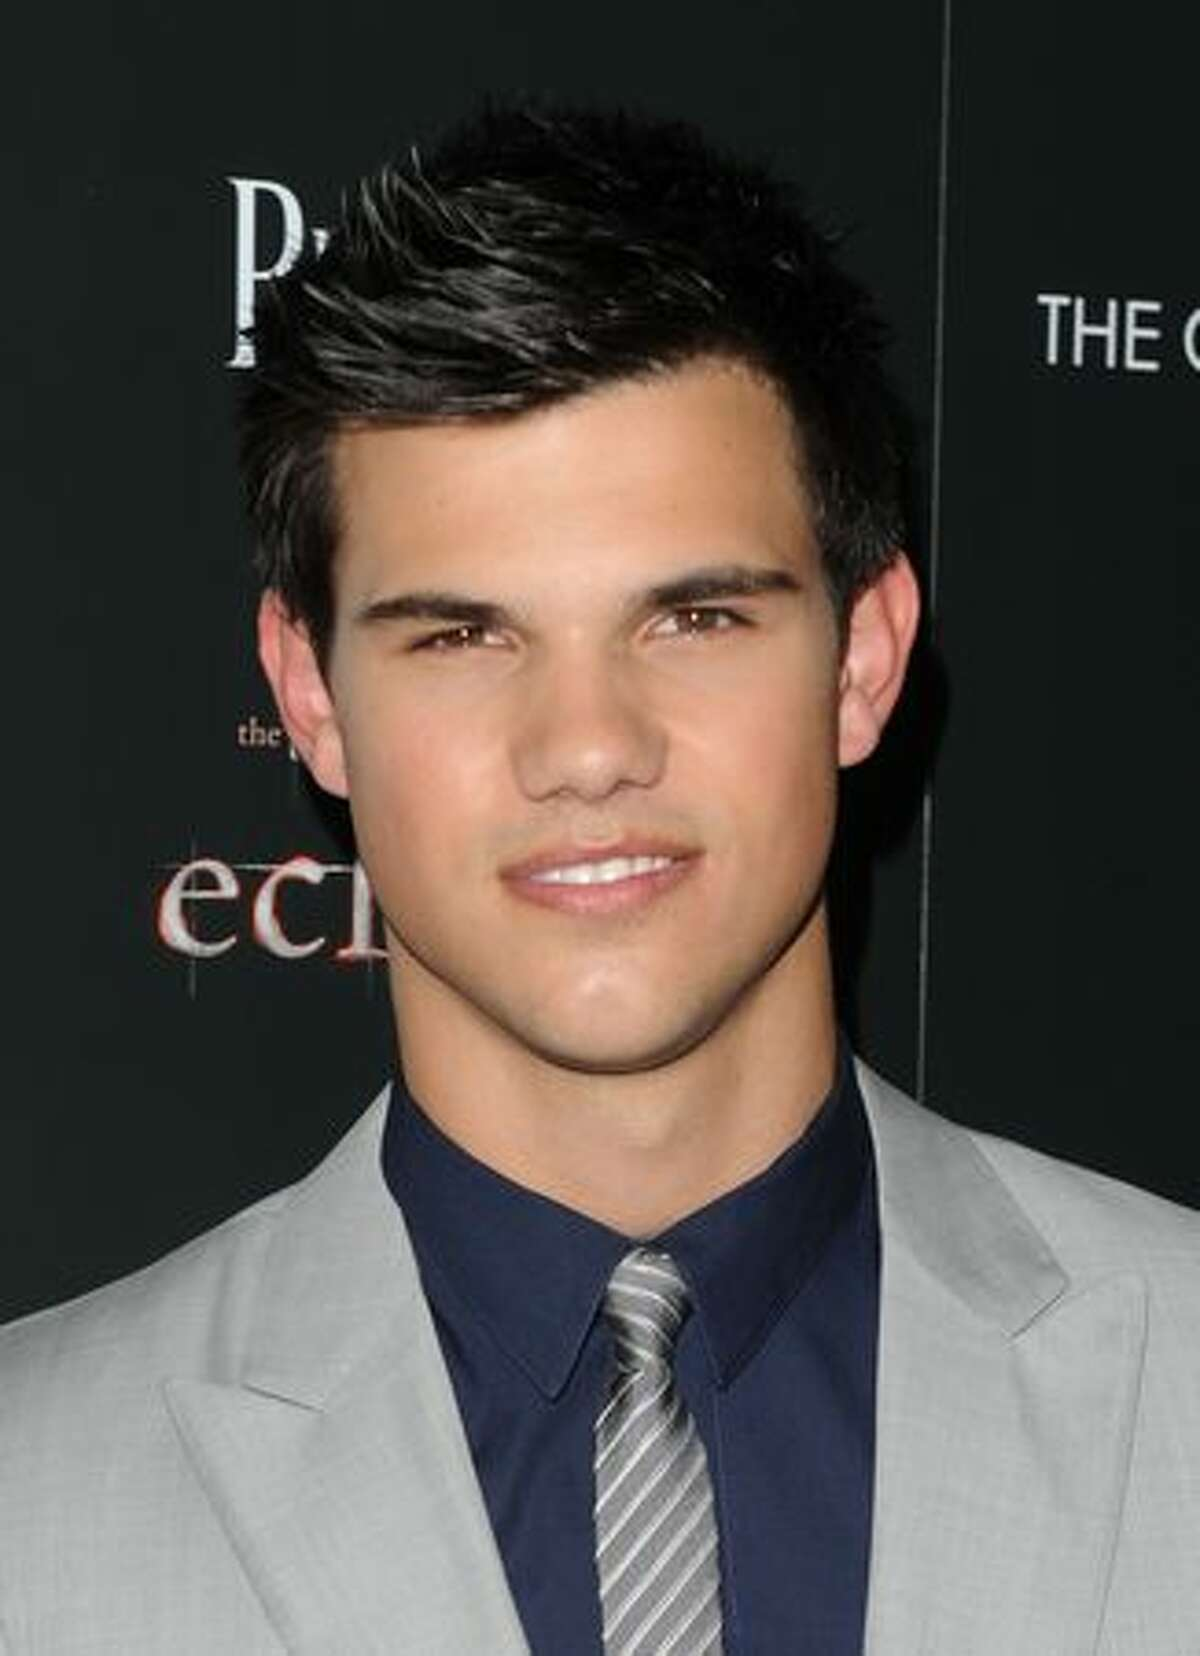 Actor Taylor Lautner attends The Cinema Society Screening Of